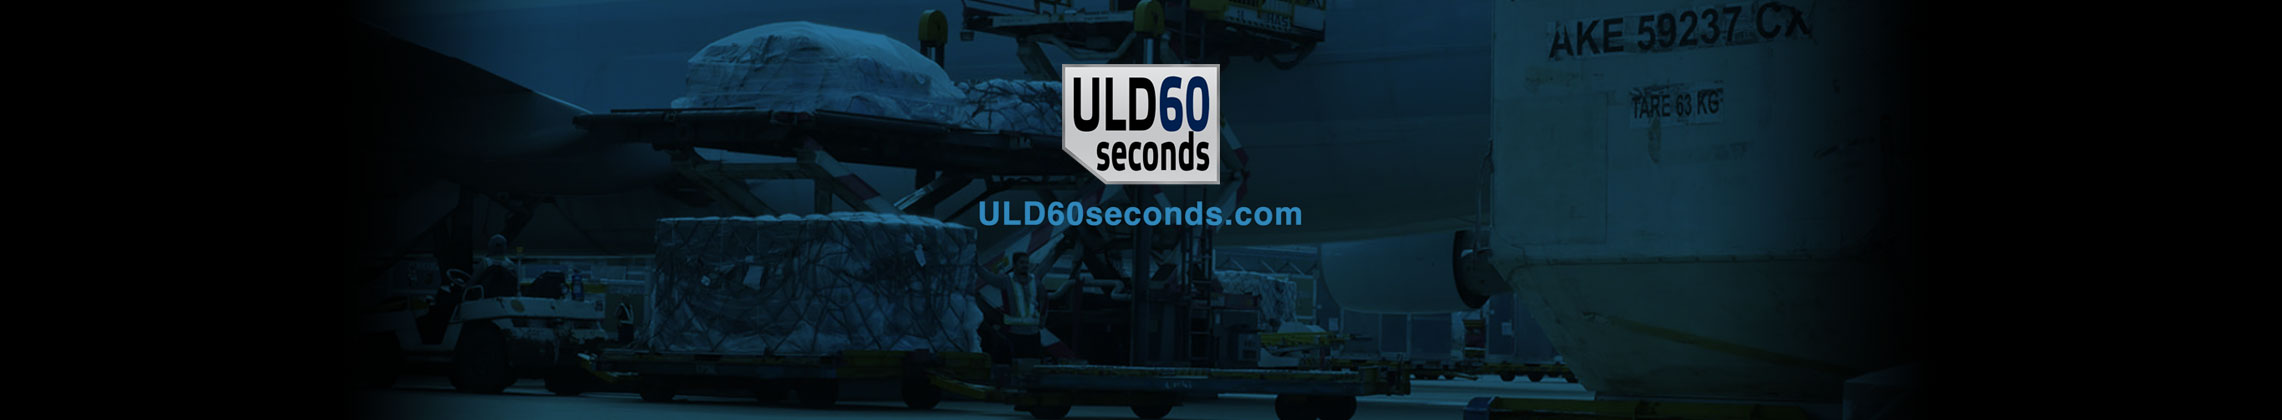 ULD CARE - ULD60seconds